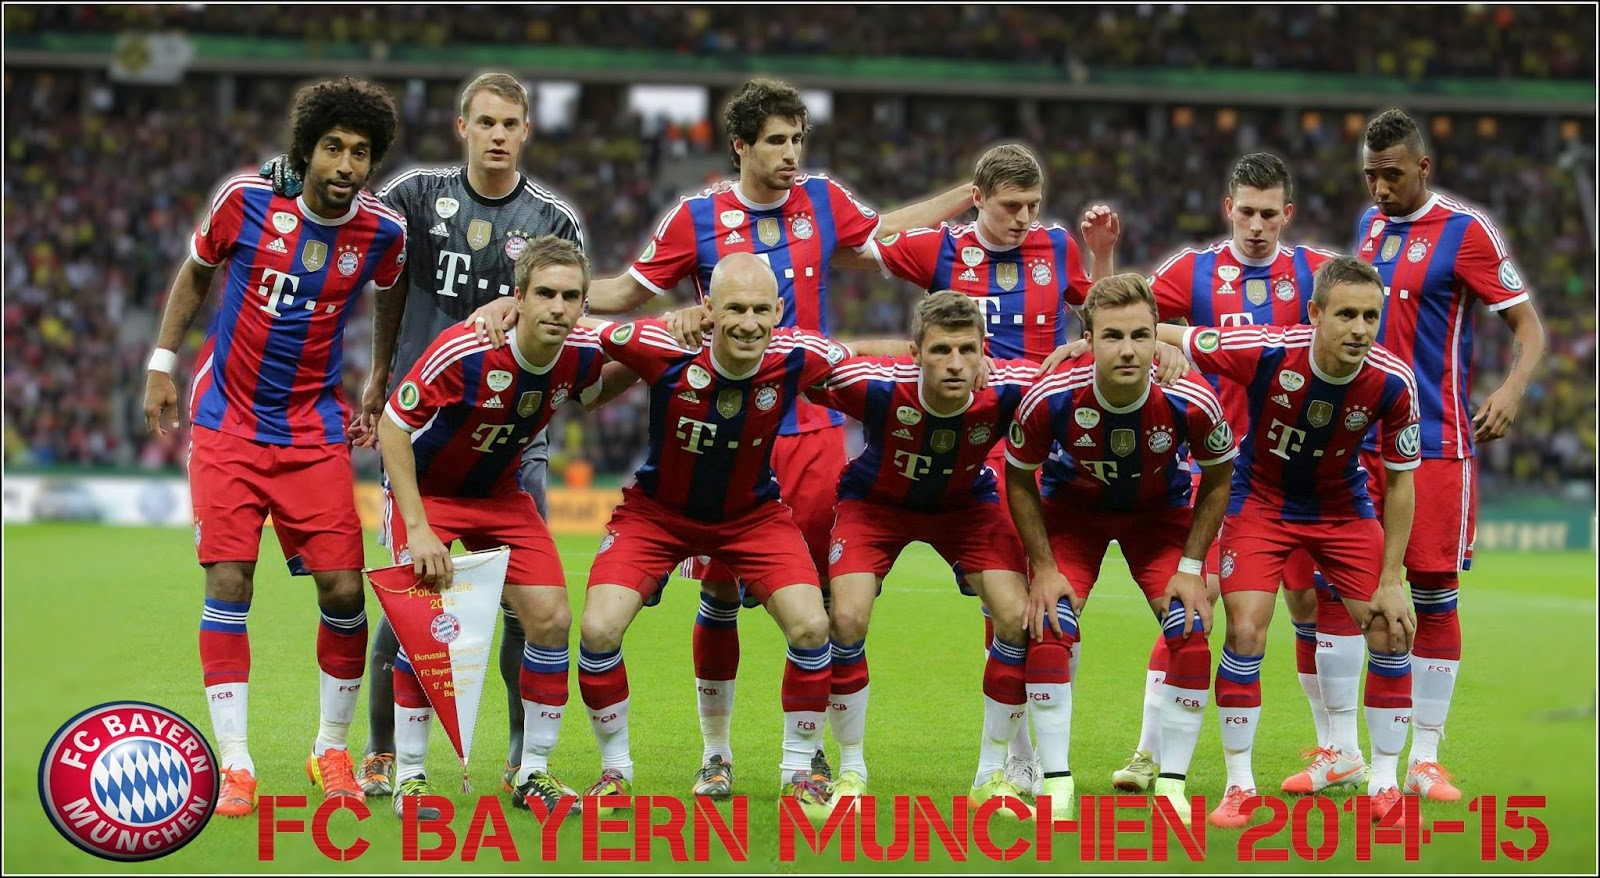 FC Bayern Munchen 2014-2015 Home Jersey Kit Wallpaper